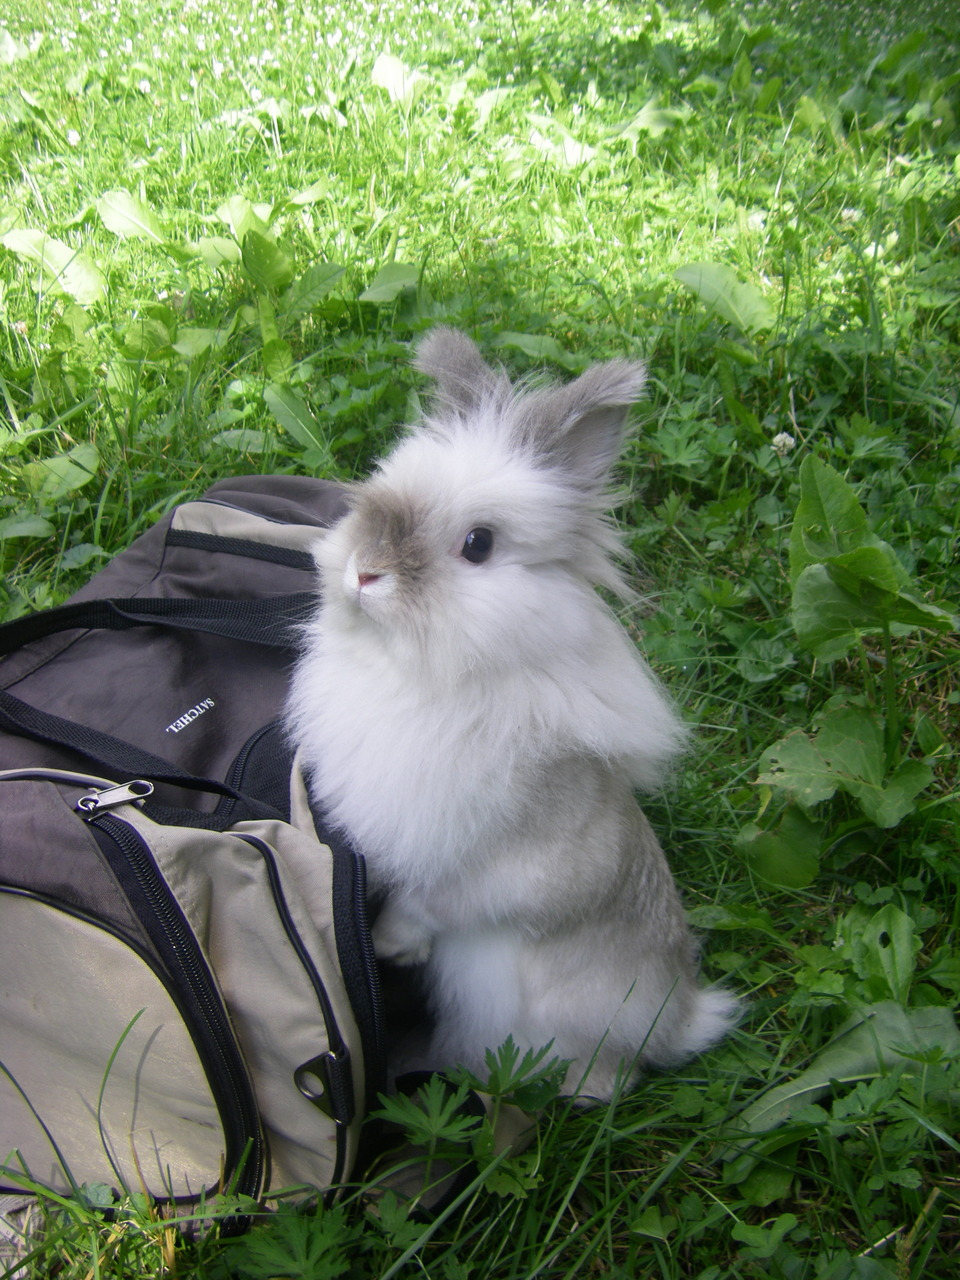 Rabbit and bag